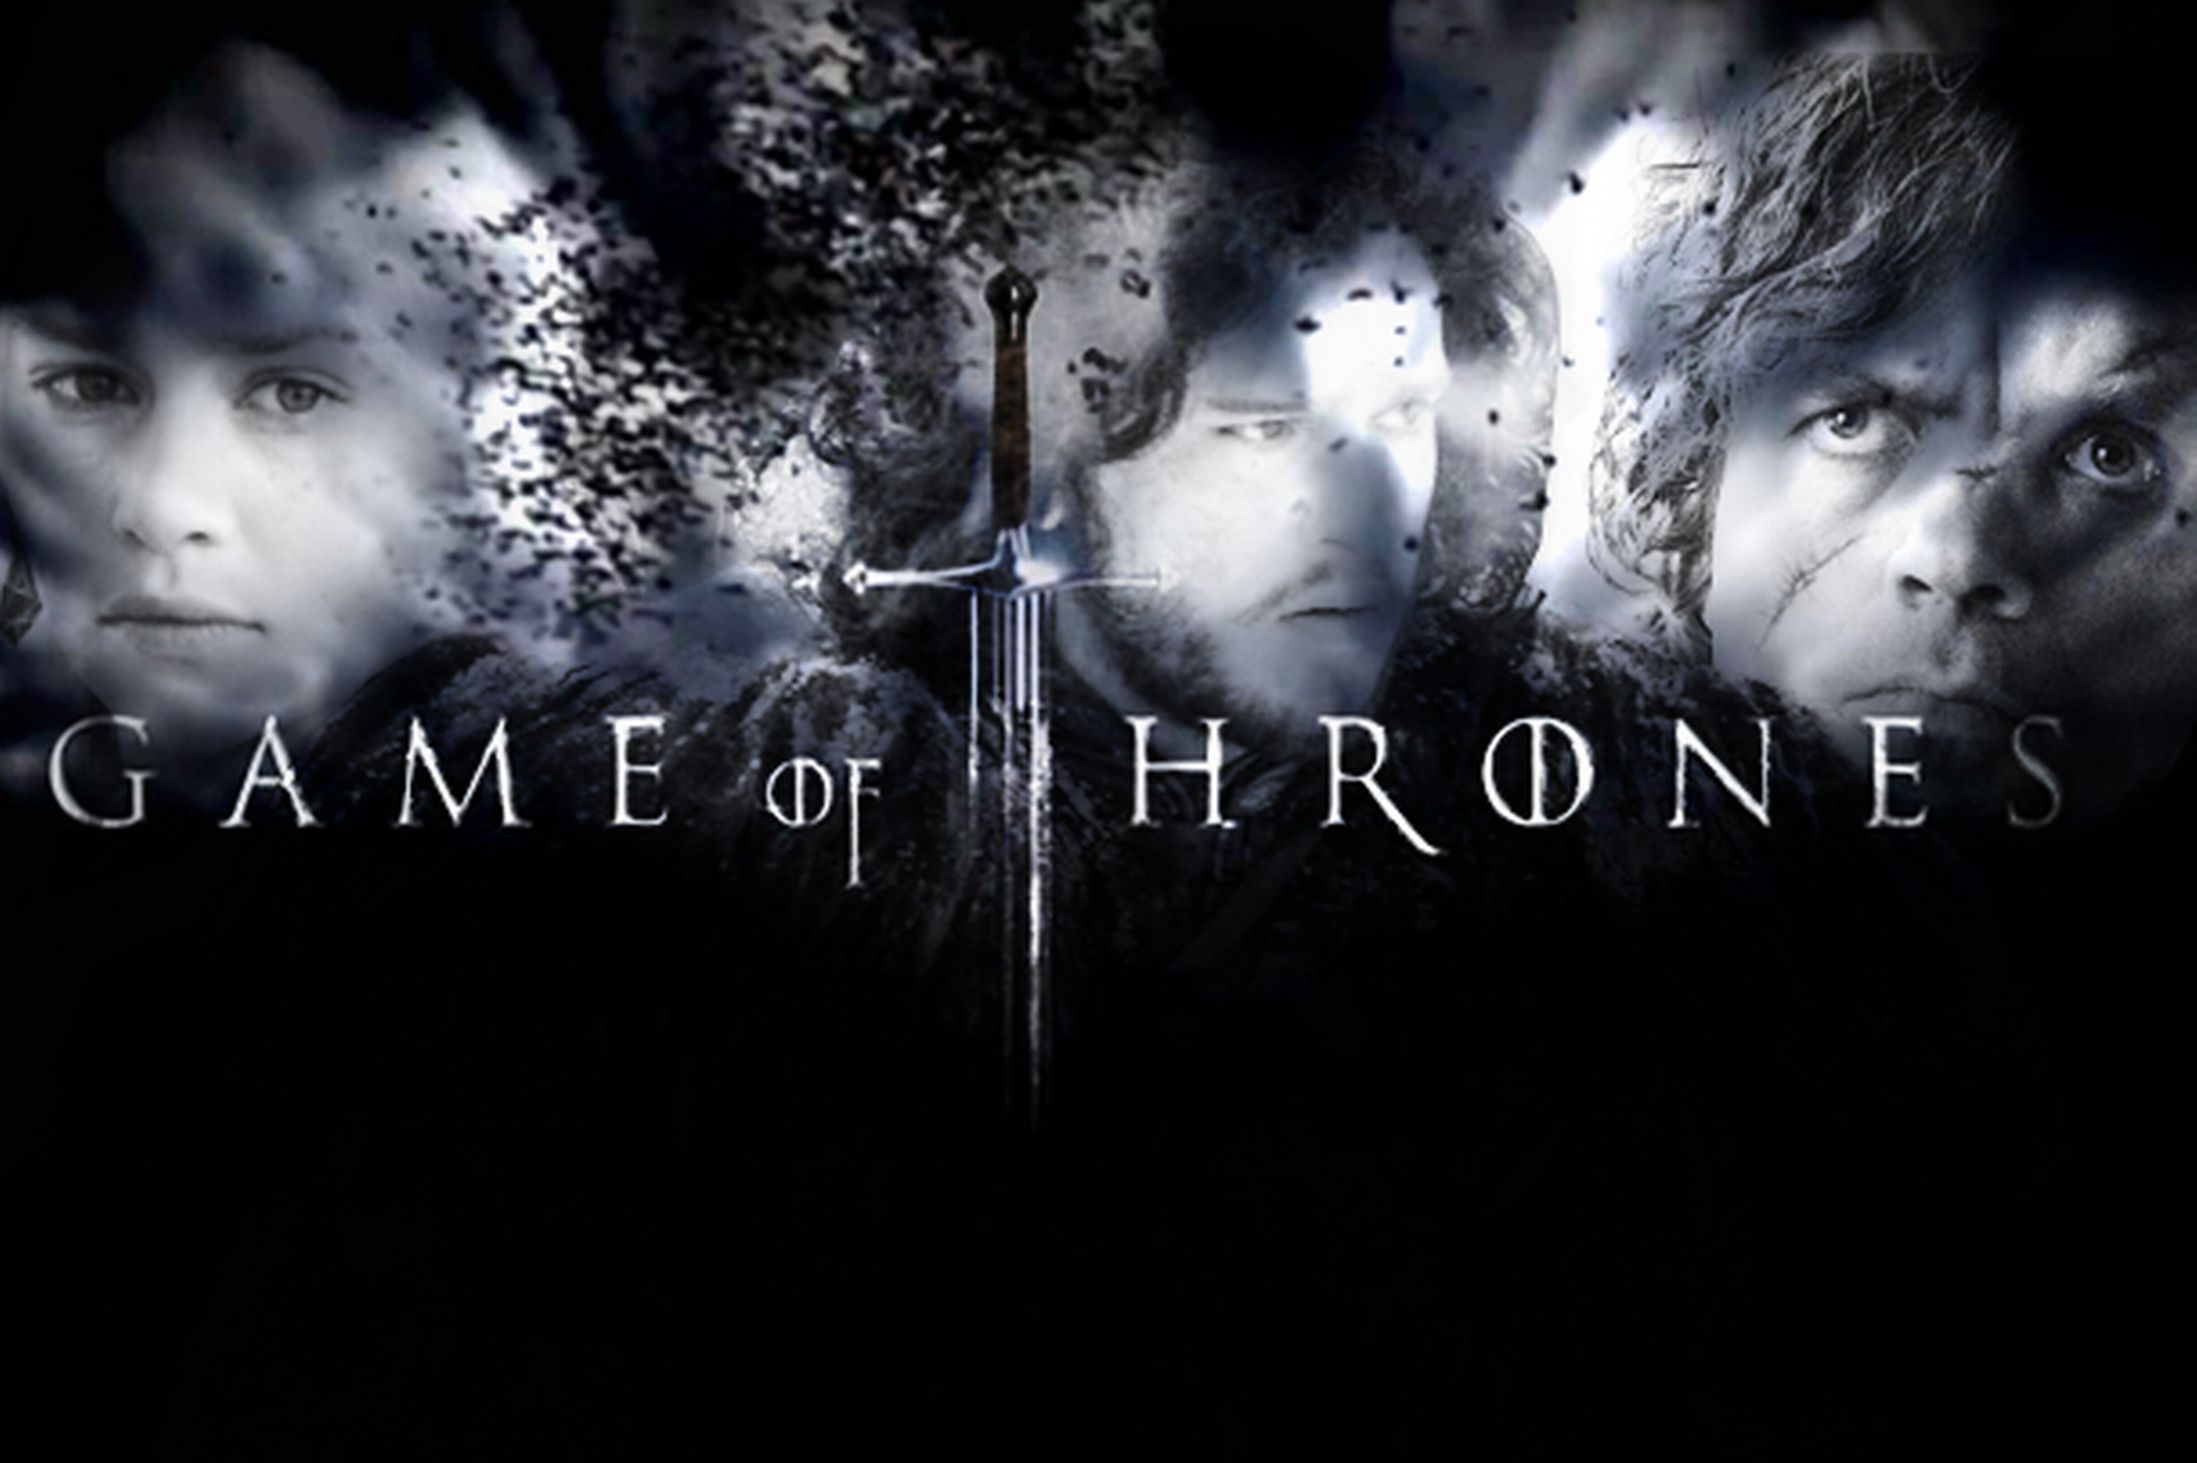 Games of Thrones temporada 6 capitulo 2 on line